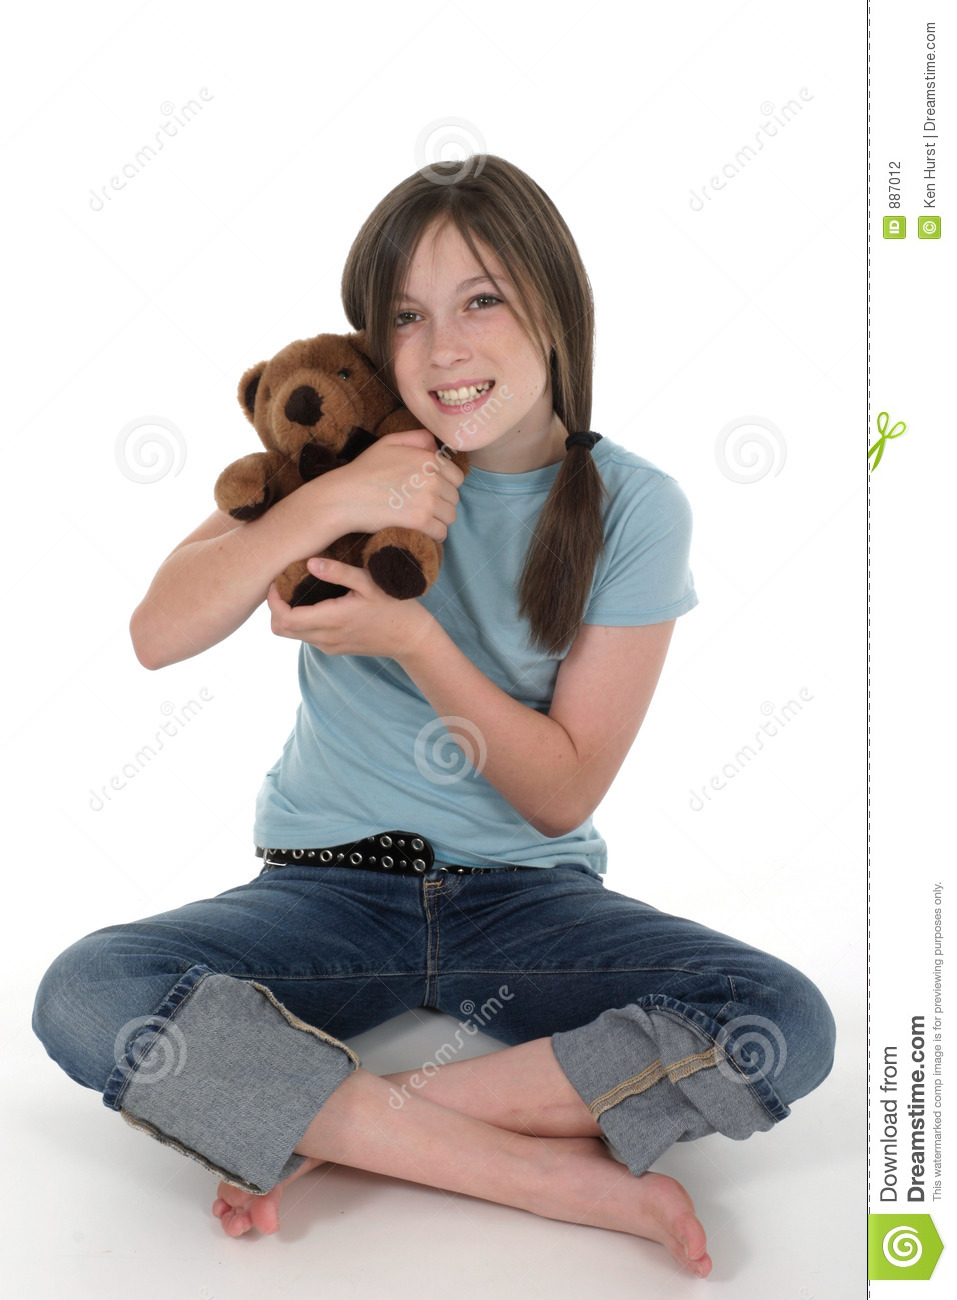 Little Girl Holding Teddy Bear 6 Stock Photo - Image: 887012Little Girl With Teddy Bear Black And White